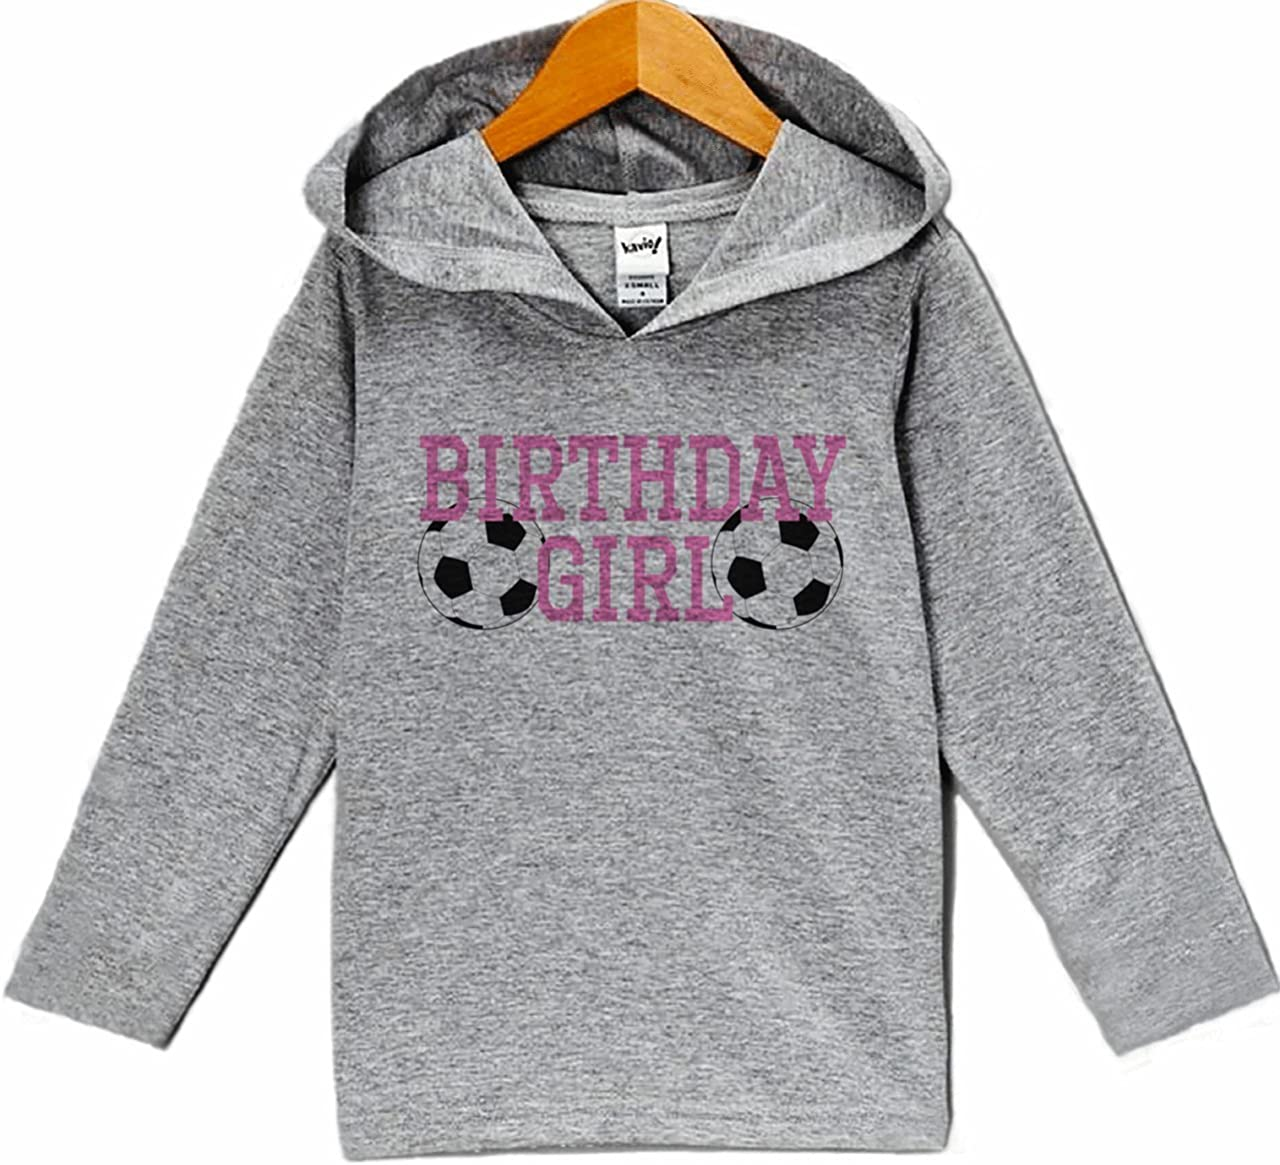 7 ate 9 Apparel Girls Soccer Birthday Hoodie